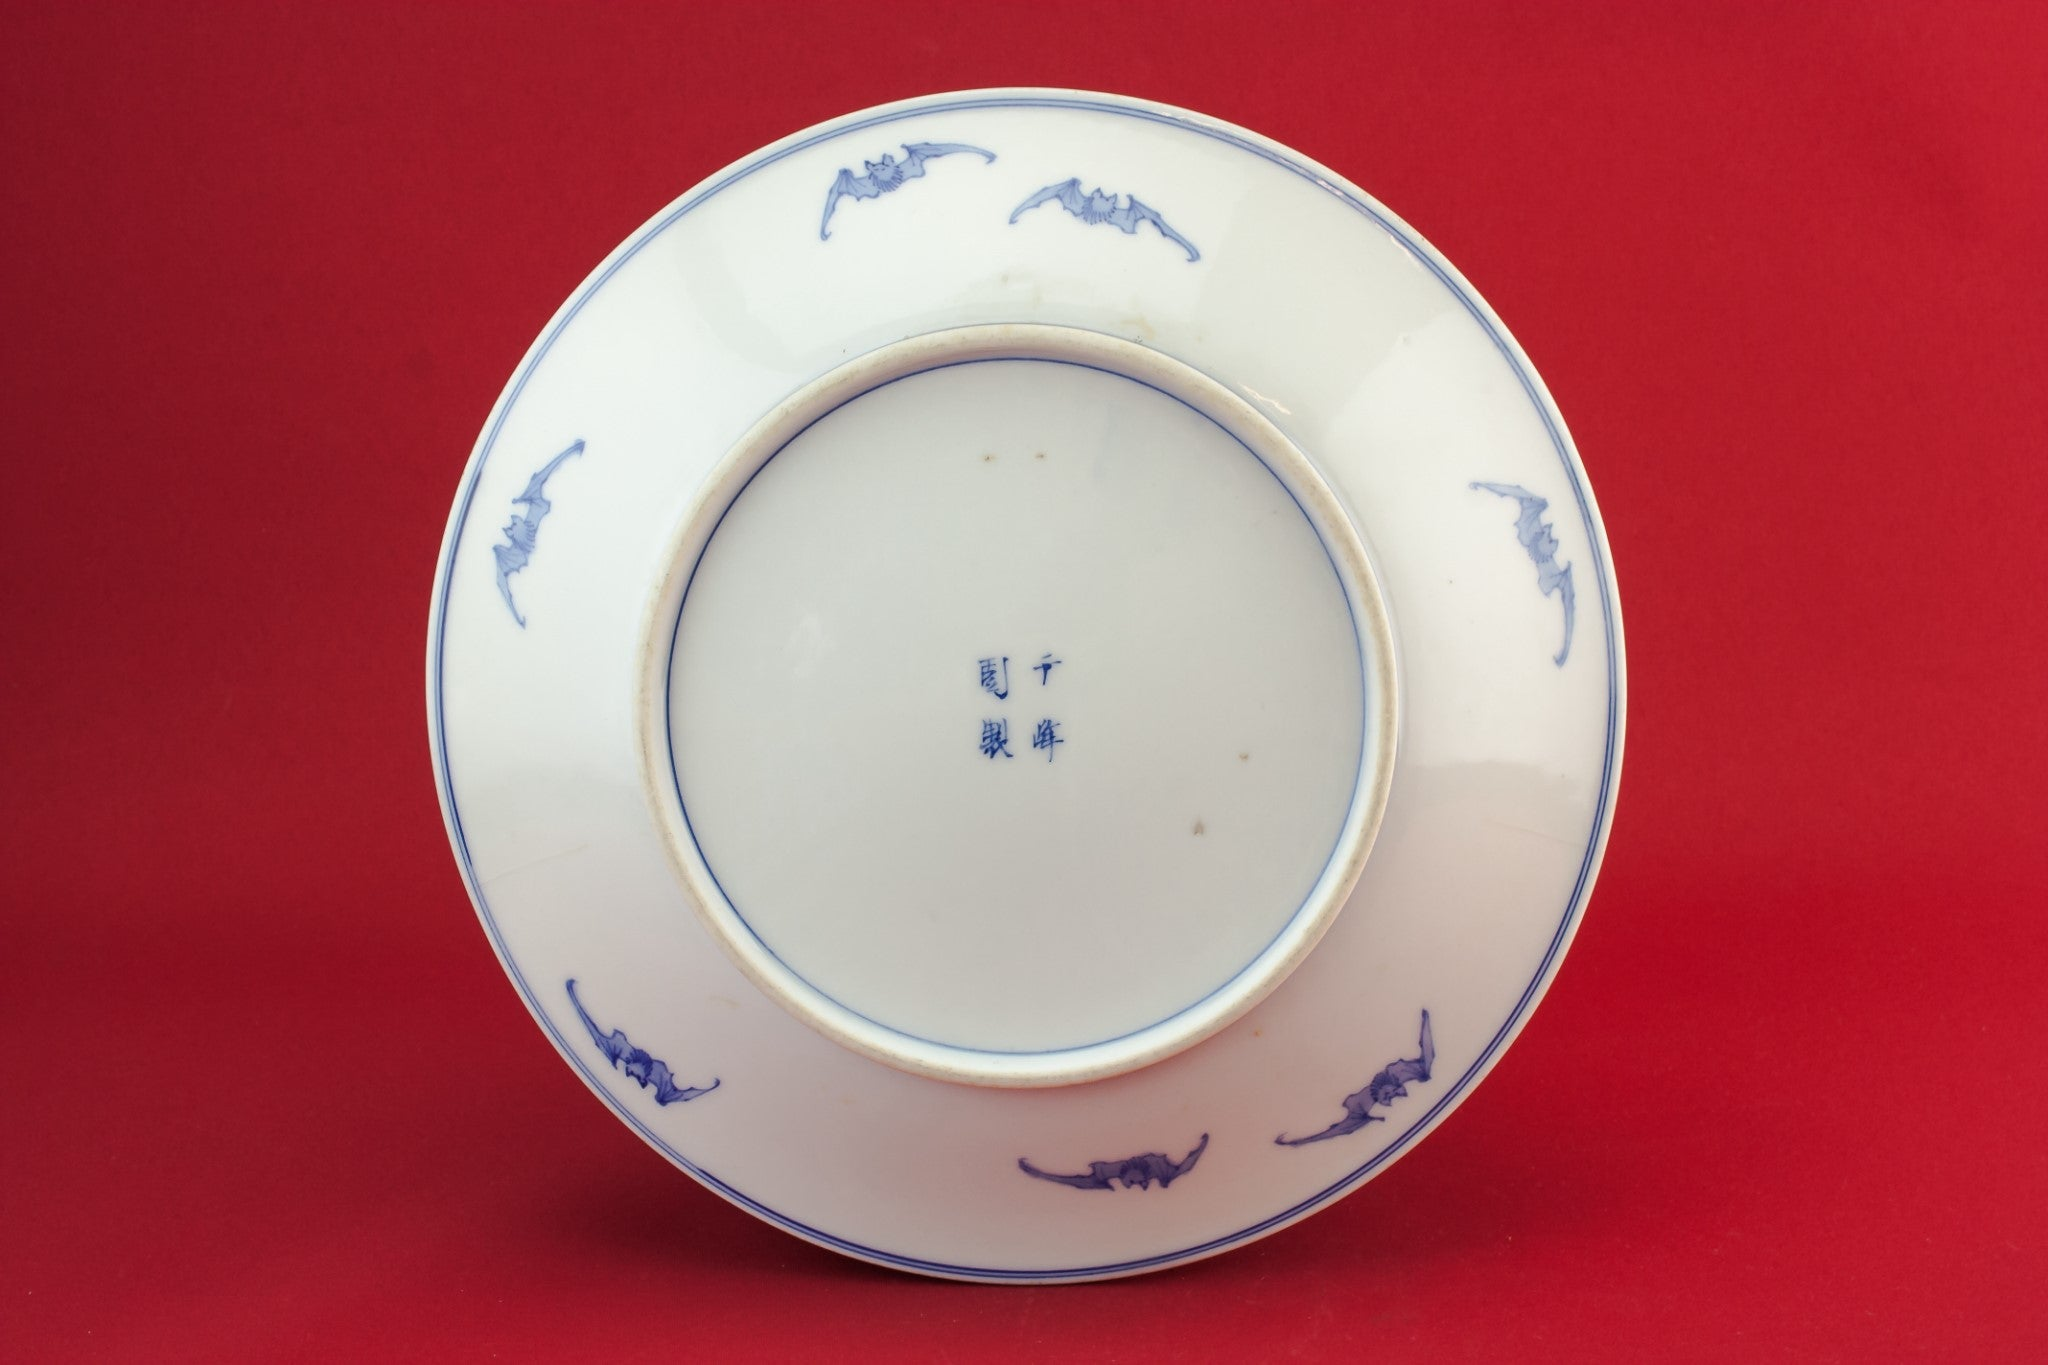 4 porcelain dinner plates